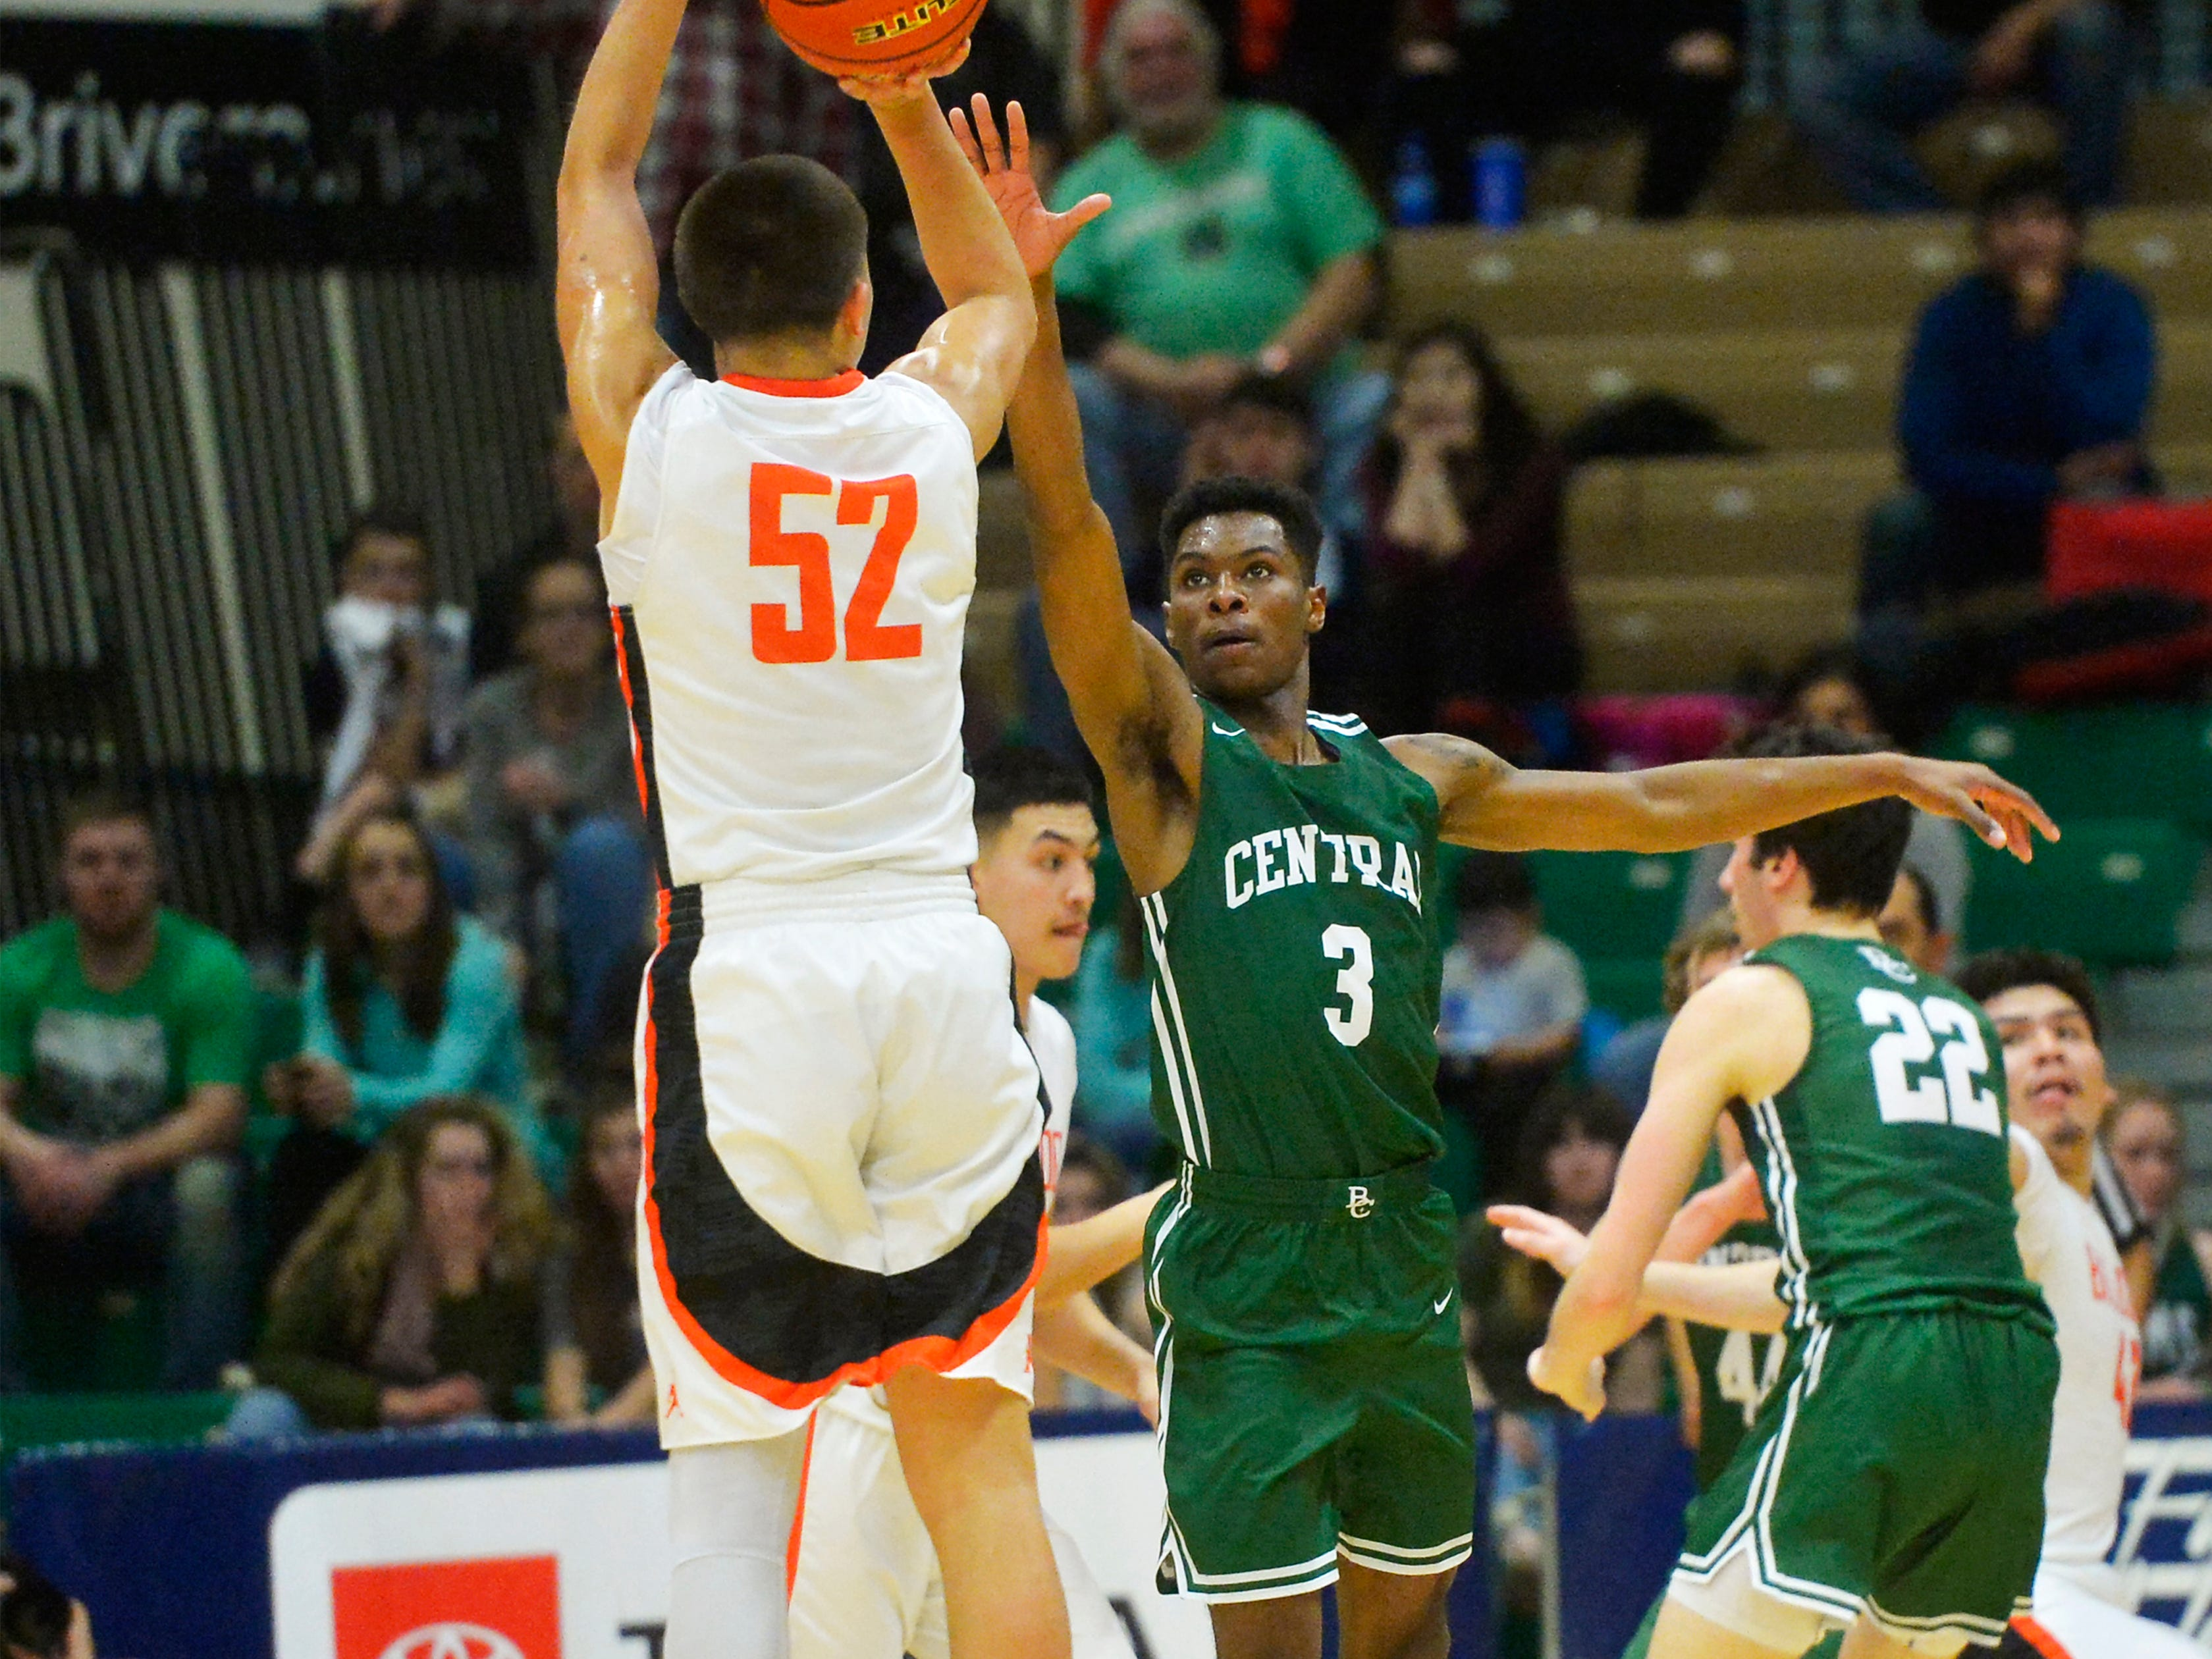 Billings Central's Chrishon Dixon defends a shot by Hardin's Famous Lefthand in the title game of the State Class A Basketball Tournament in the Four Seasons Arena, Saturday.